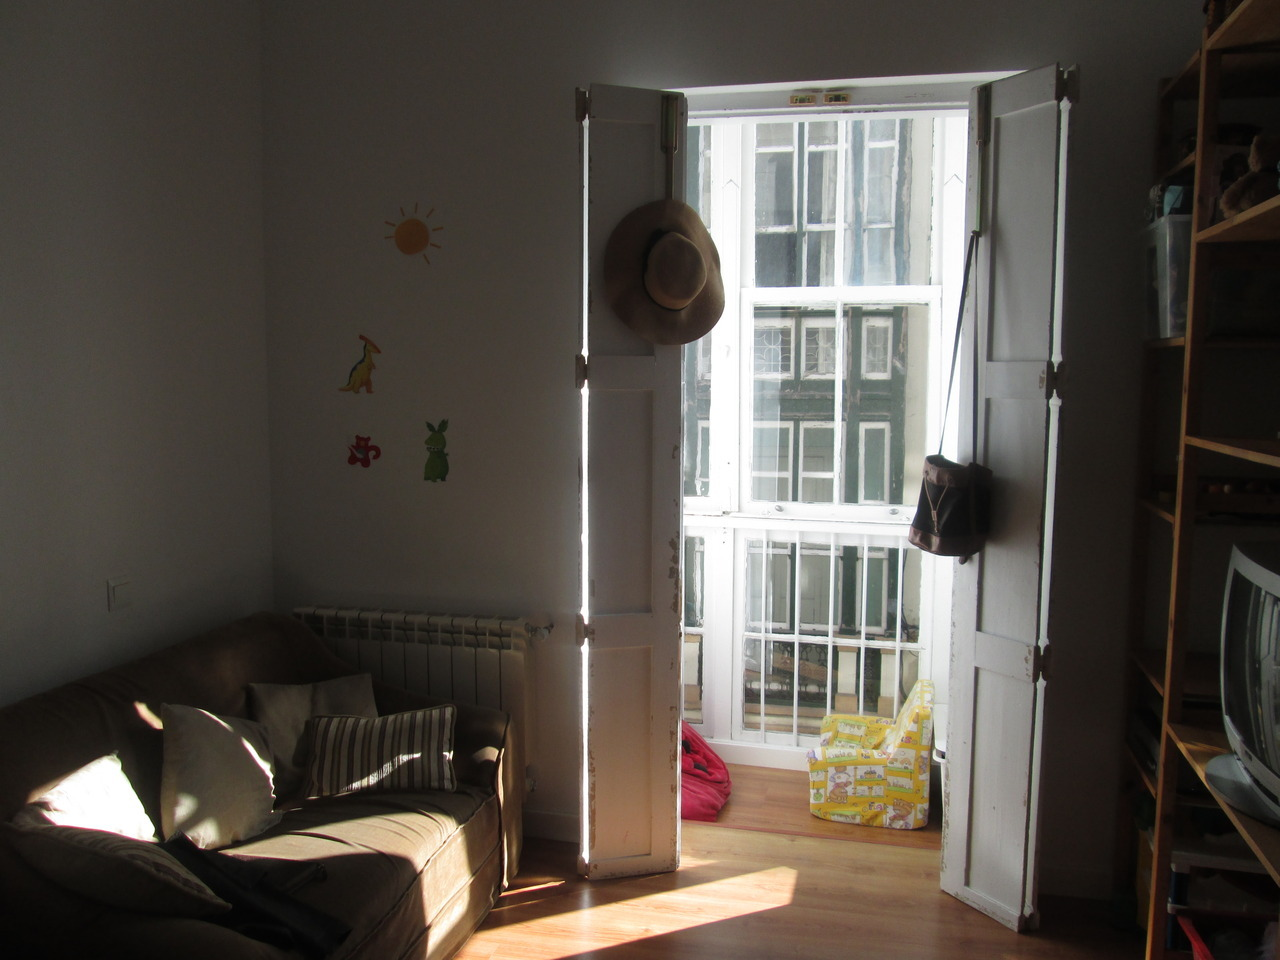 Ex-children's playroom/place to rest my head in Spain for the last three weeks I'm here